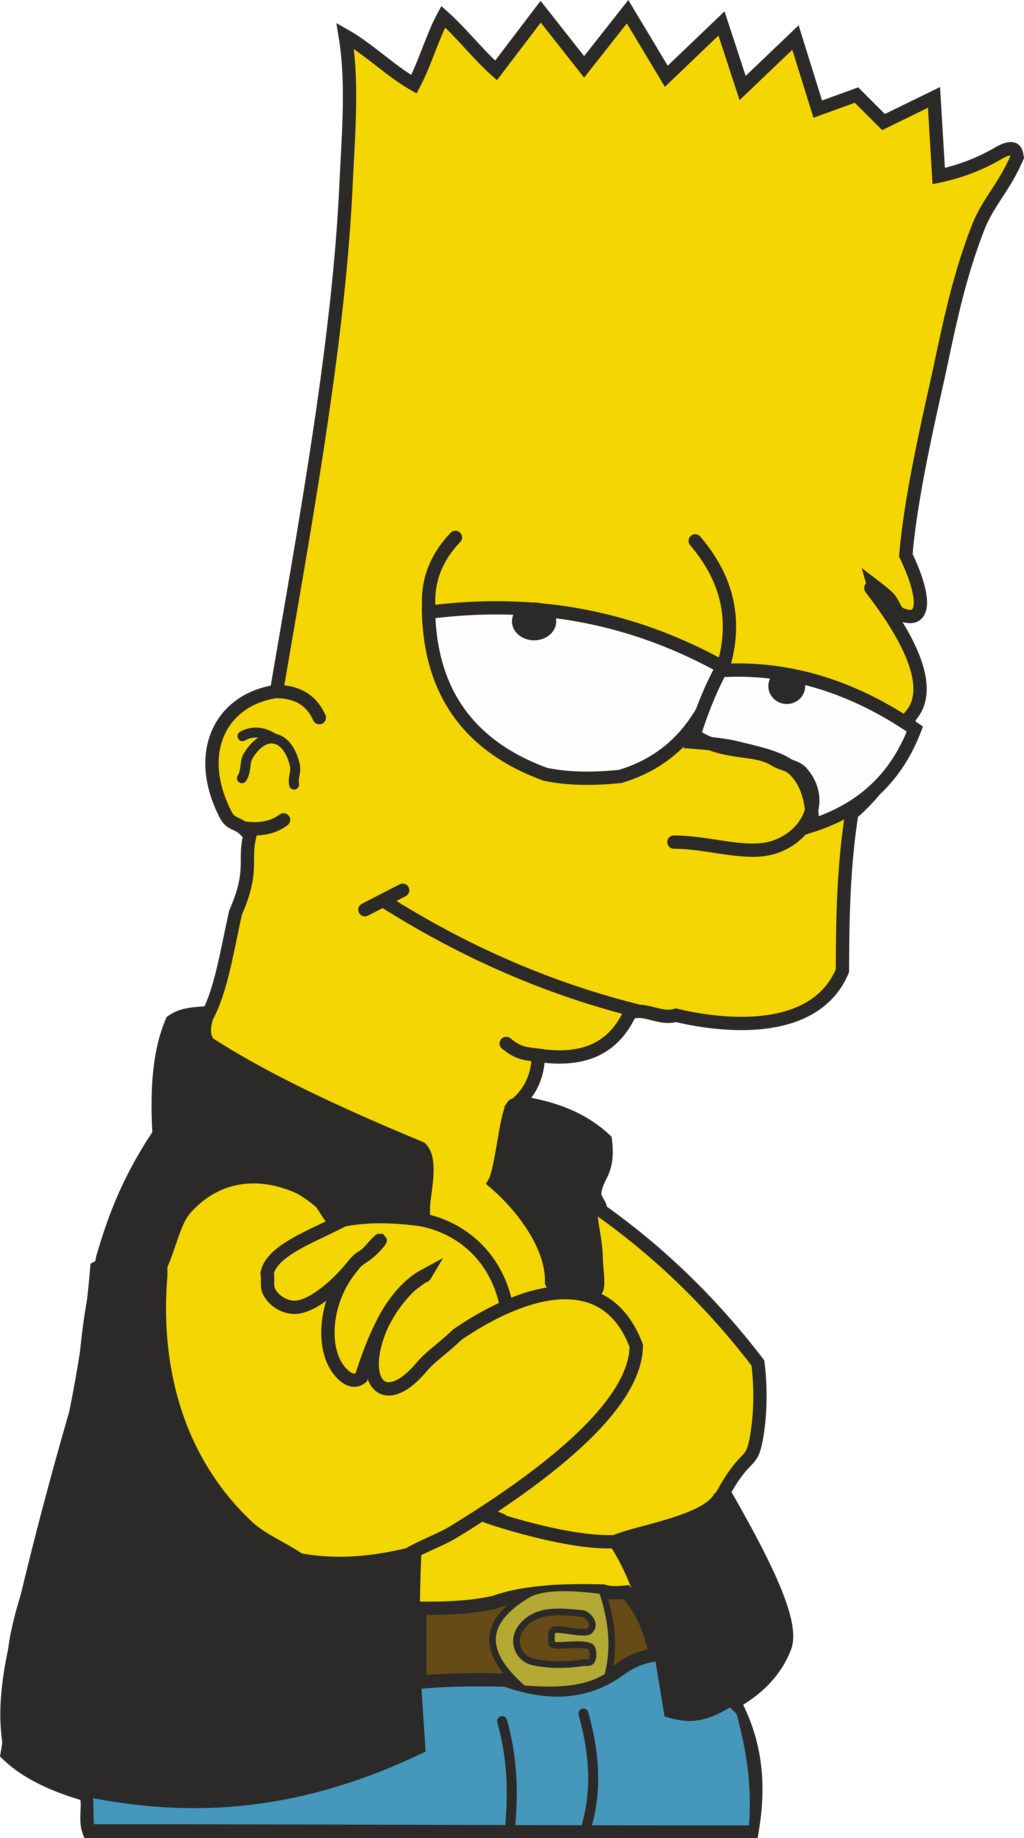 Bart Simpson Free Png Image Png Image - Bart Simpson, Transparent background PNG HD thumbnail